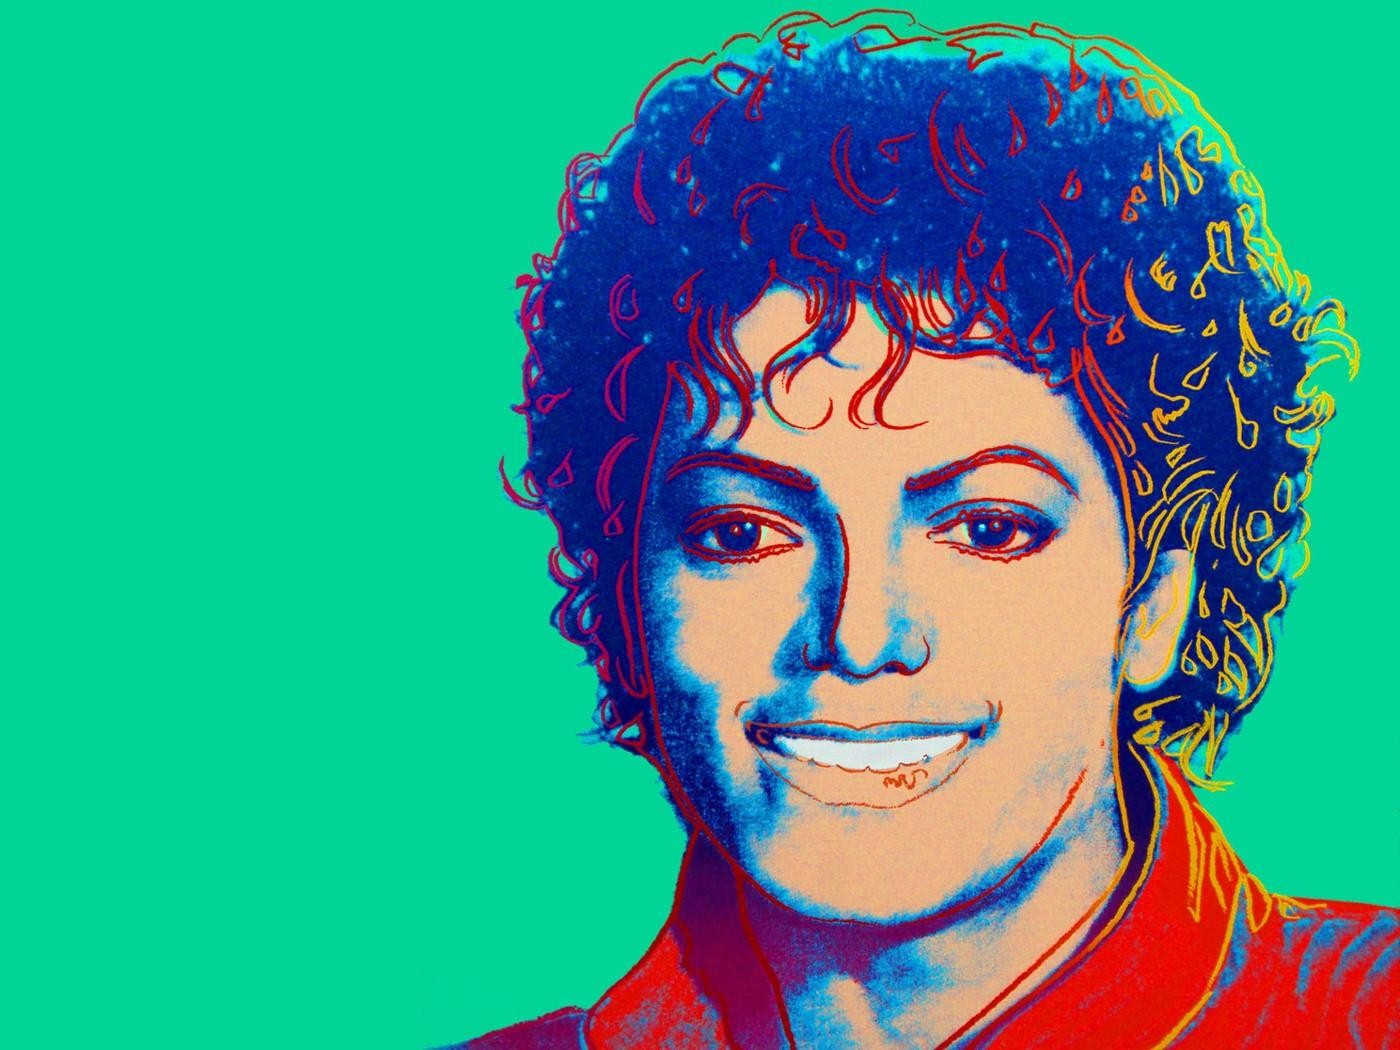 Michael Jackson by Andy Warhol (1984) wallpaper 1024x768